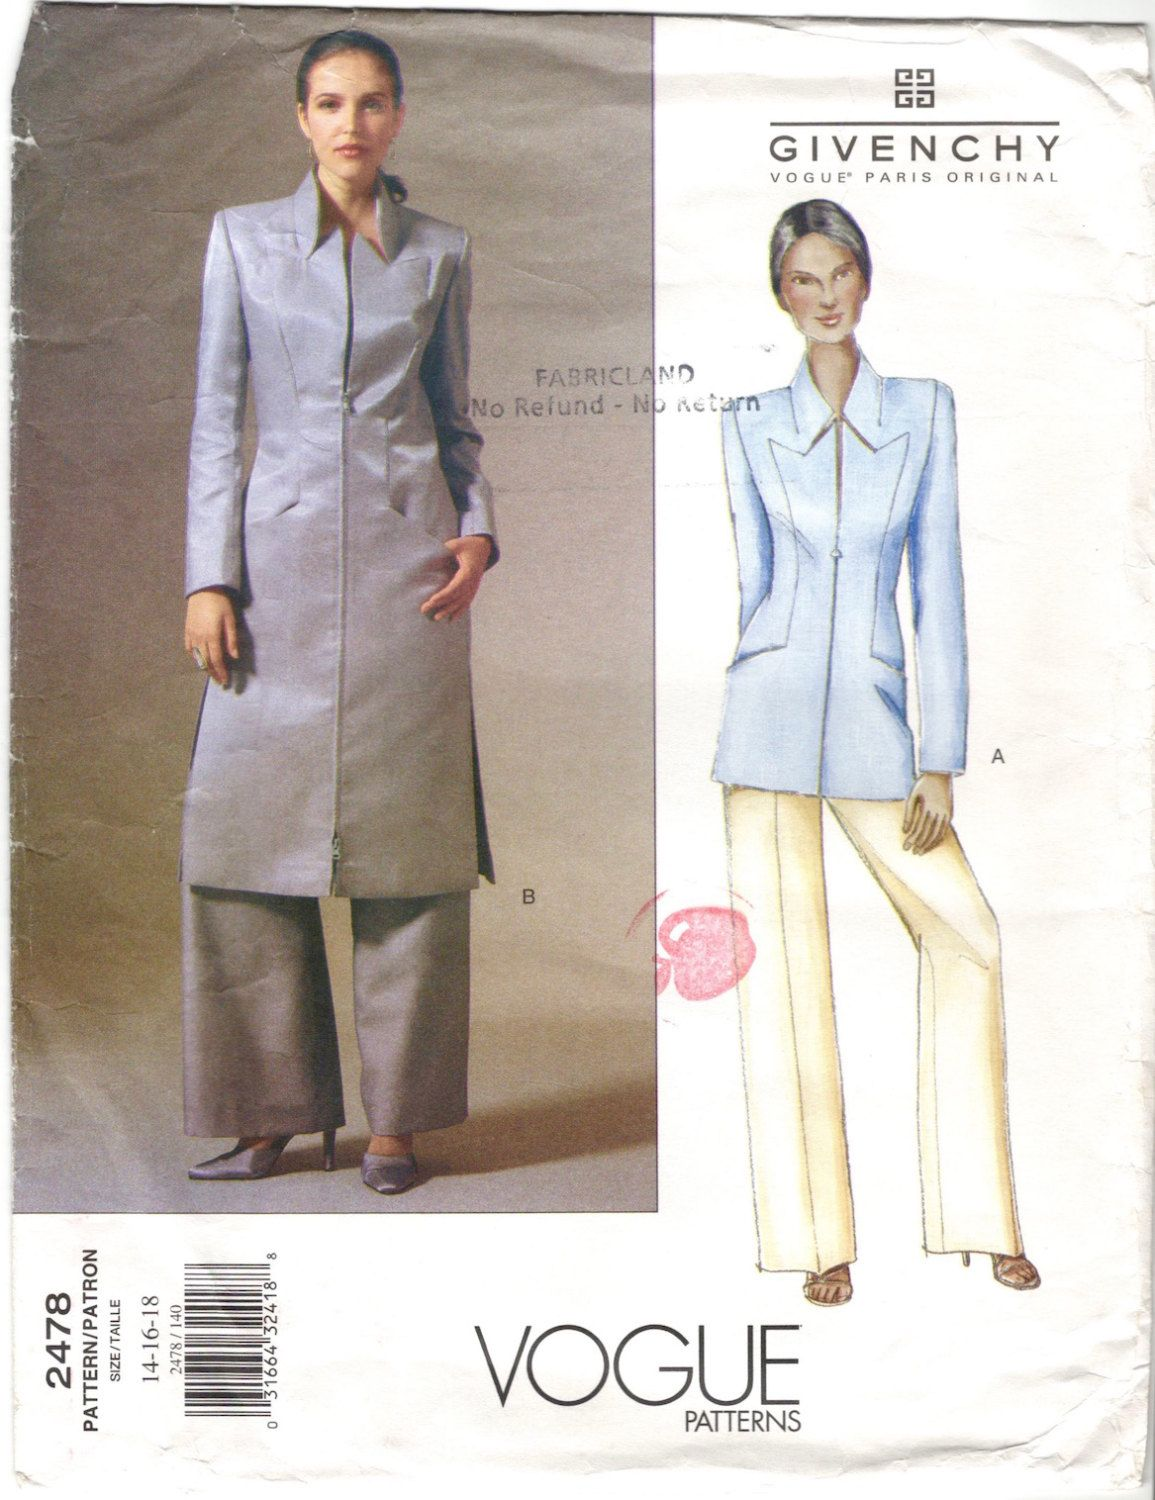 Alexander McQueen for Givenchy long jacket & pants pattern   Etsy ...